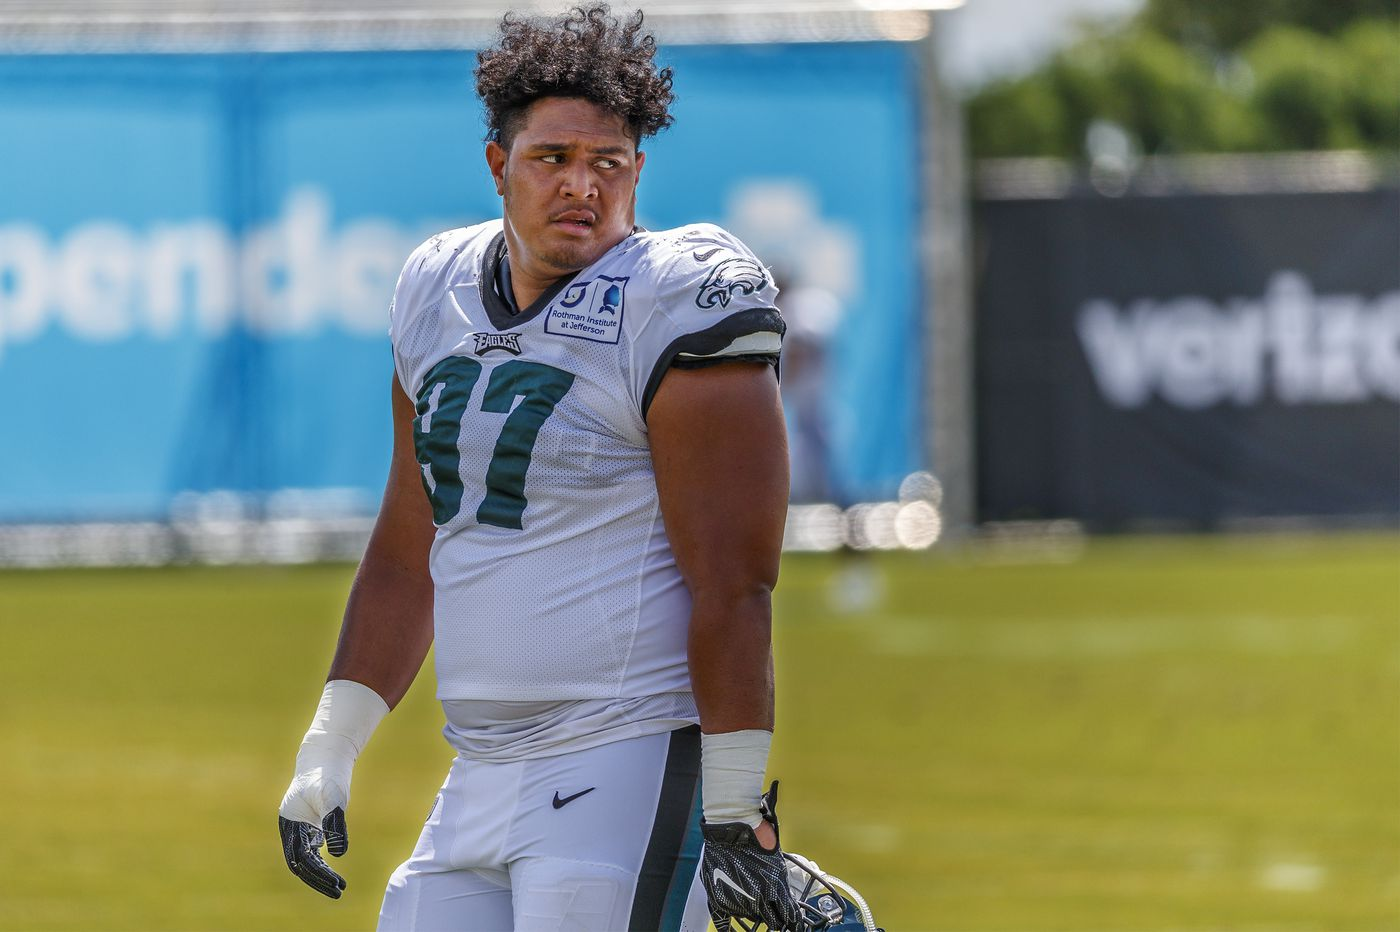 Eagles testing defensive tackle depth with Tim Jernigan's status uncertain; Haloti Ngata, Destiny Vaeao could have bigger roles